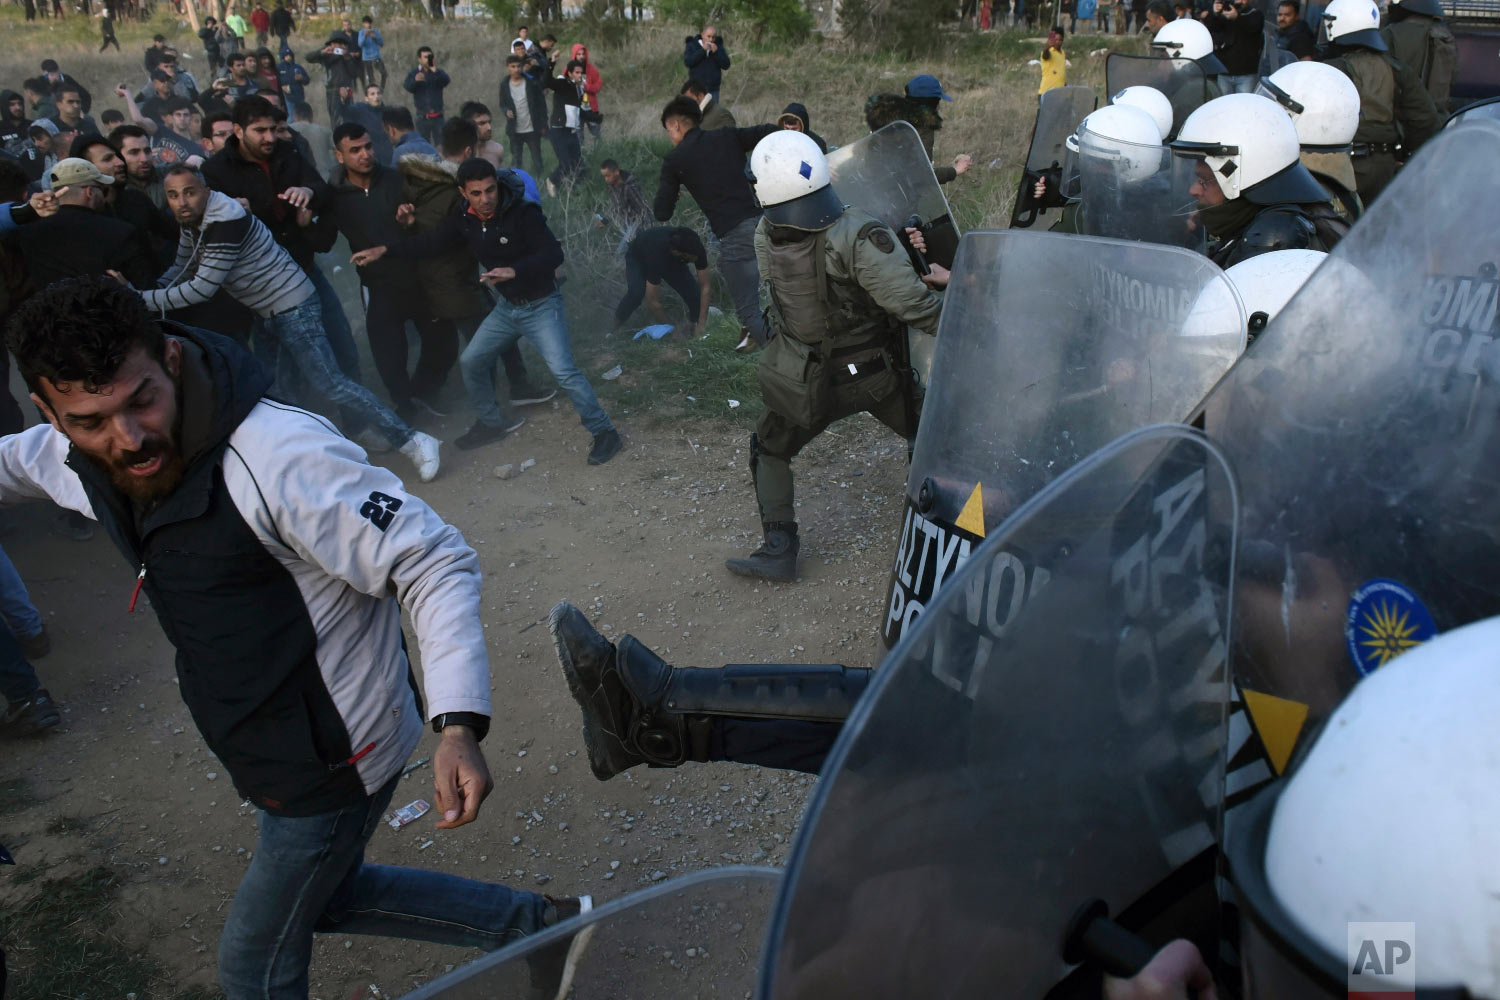 Migrants clash with riot police during a rally outside a refugee camp in the village of Diavata, west of Thessaloniki, northern Greece, Thursday, April 4, 2019. (AP Photo/Giannis Papanikos)